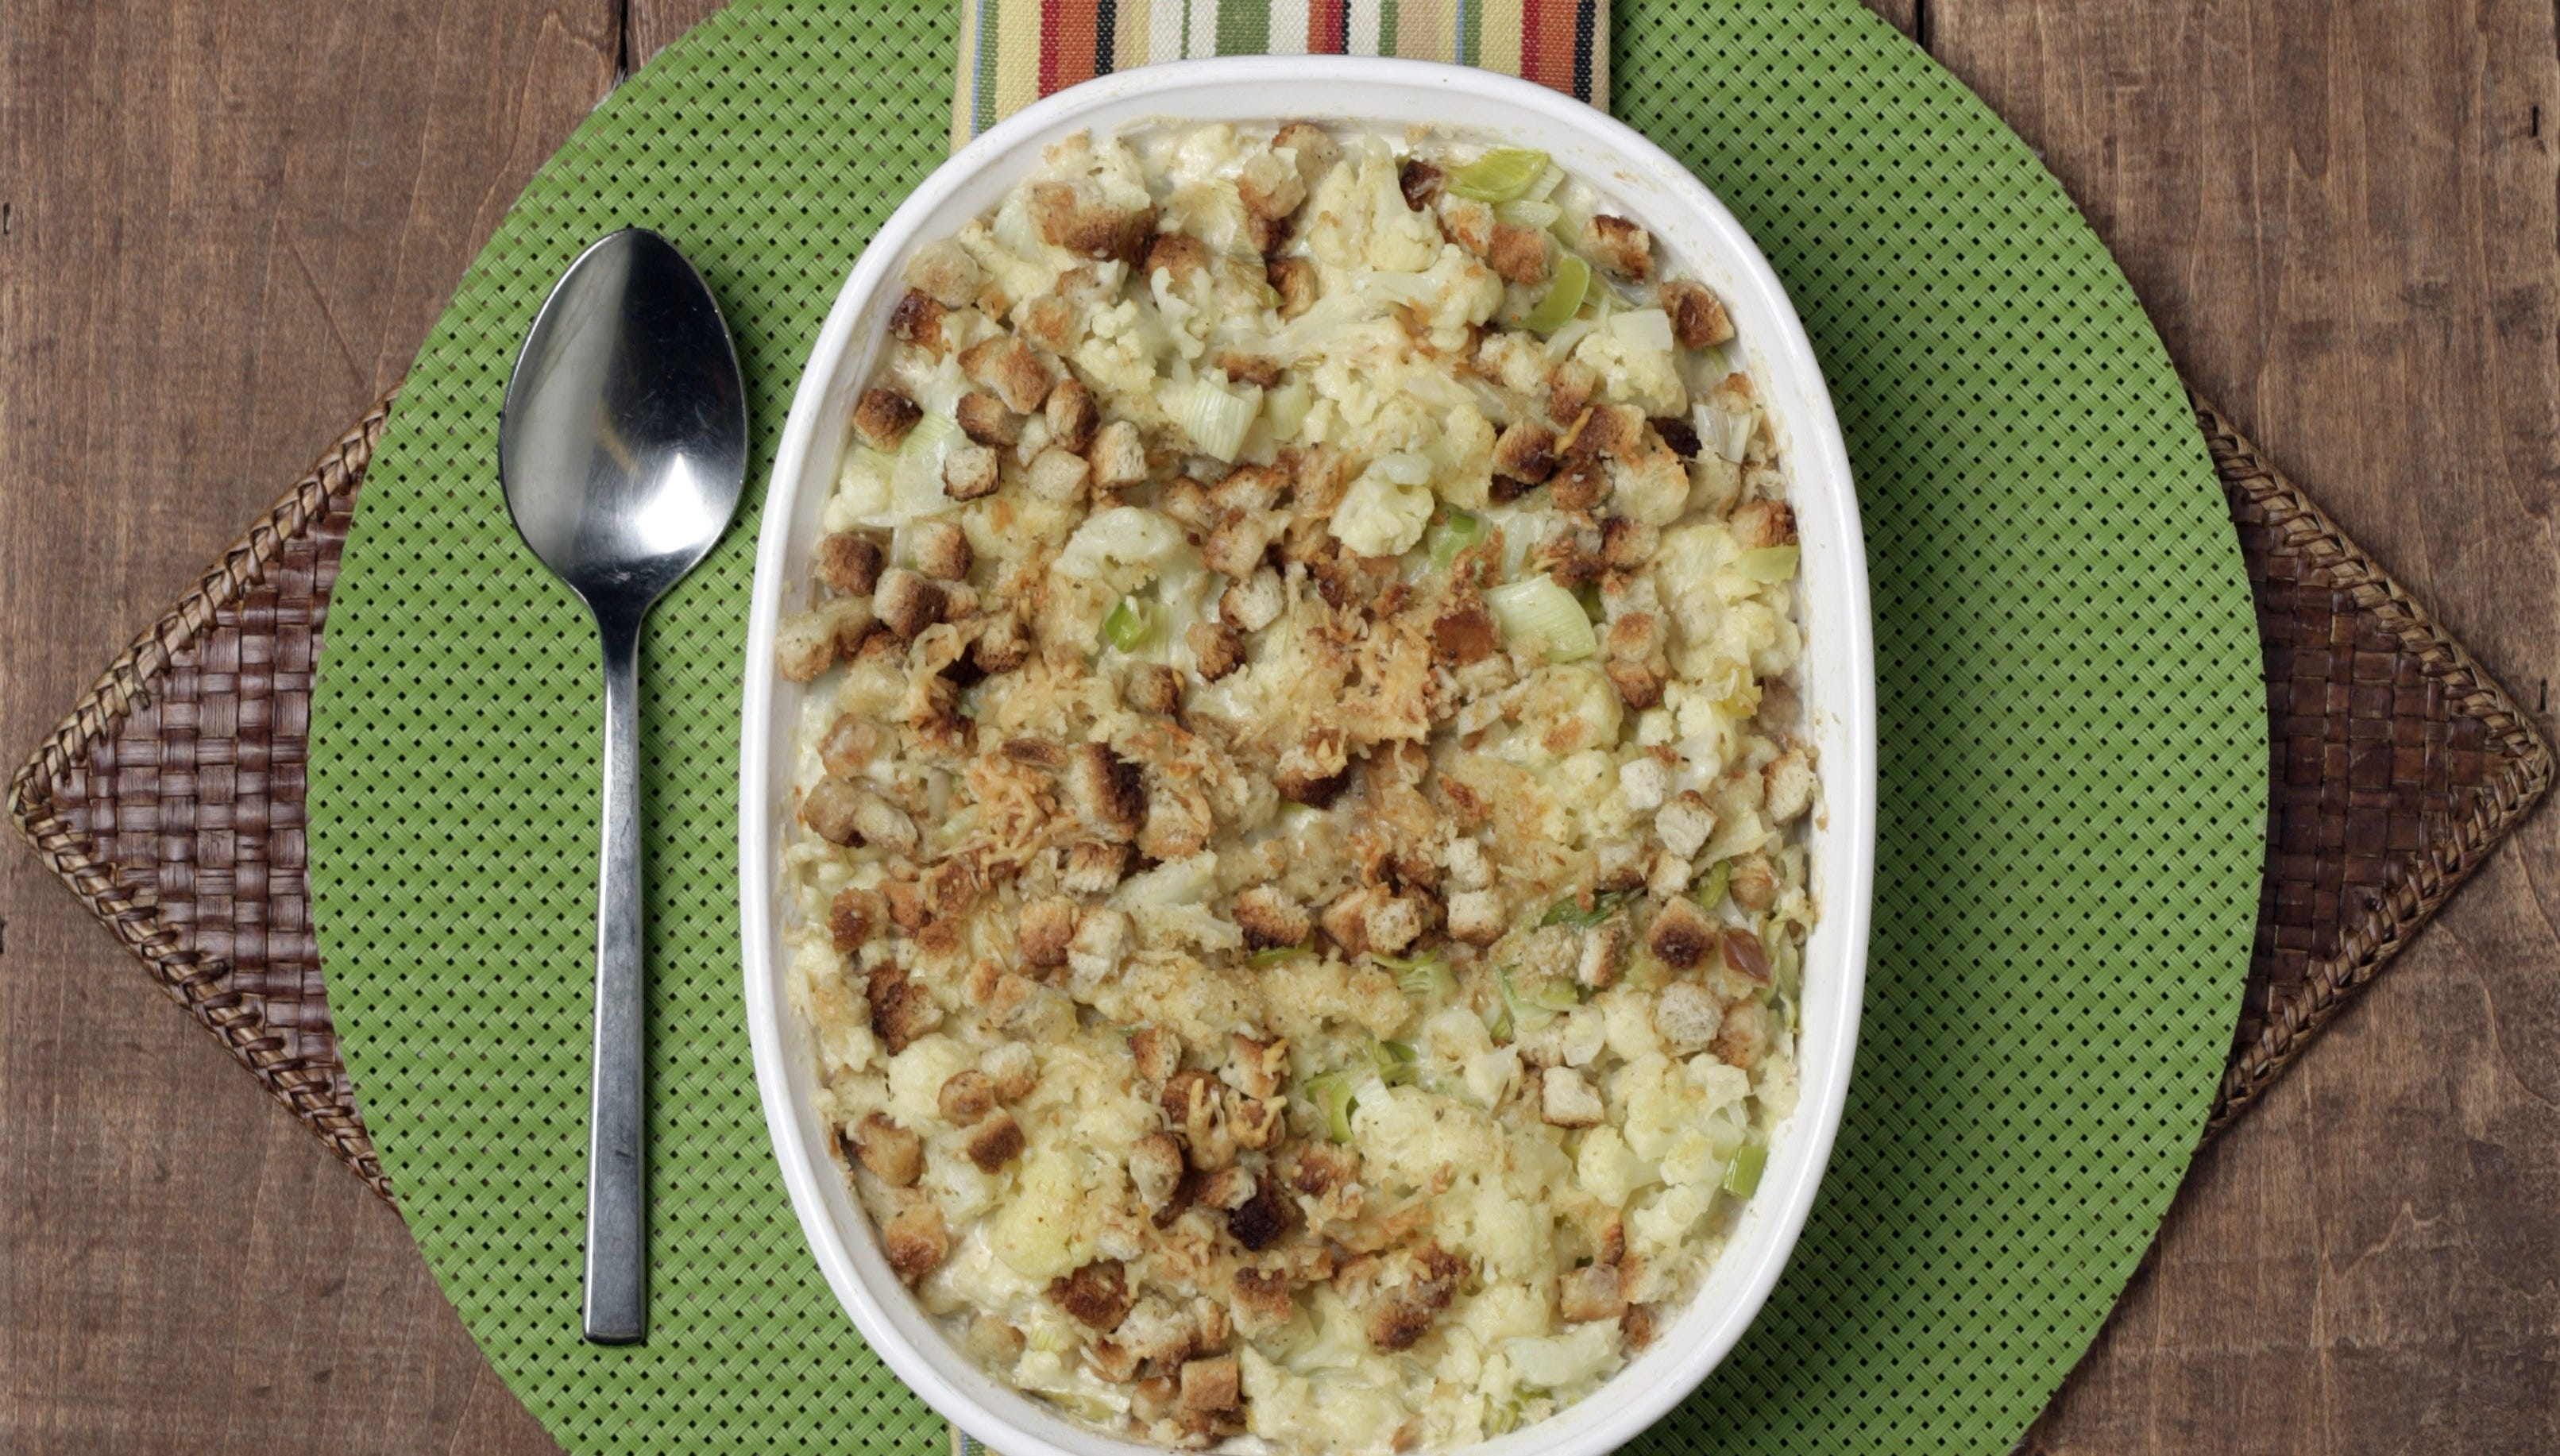 4 steps to making a gratin side dish for Thanksgiving